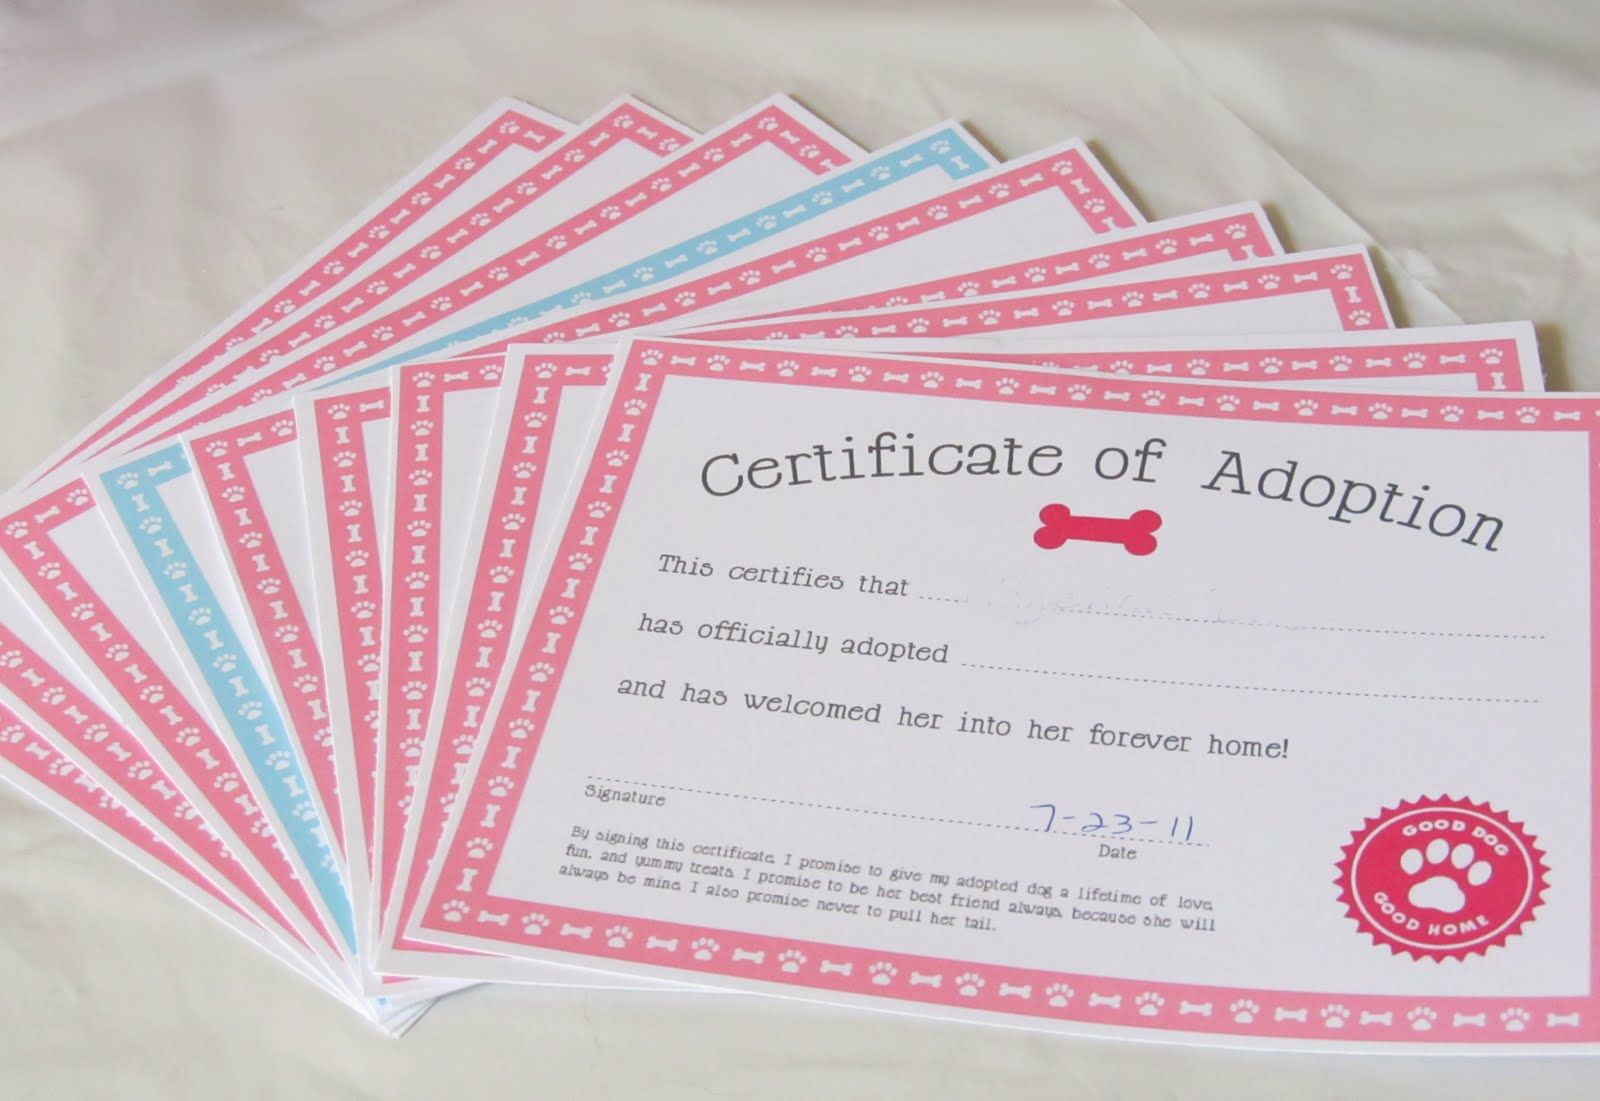 Next up was the puppy adoption each puppy received a bag of doggy adoption certificate for treat bags love sugar kisses puppy party xflitez Gallery